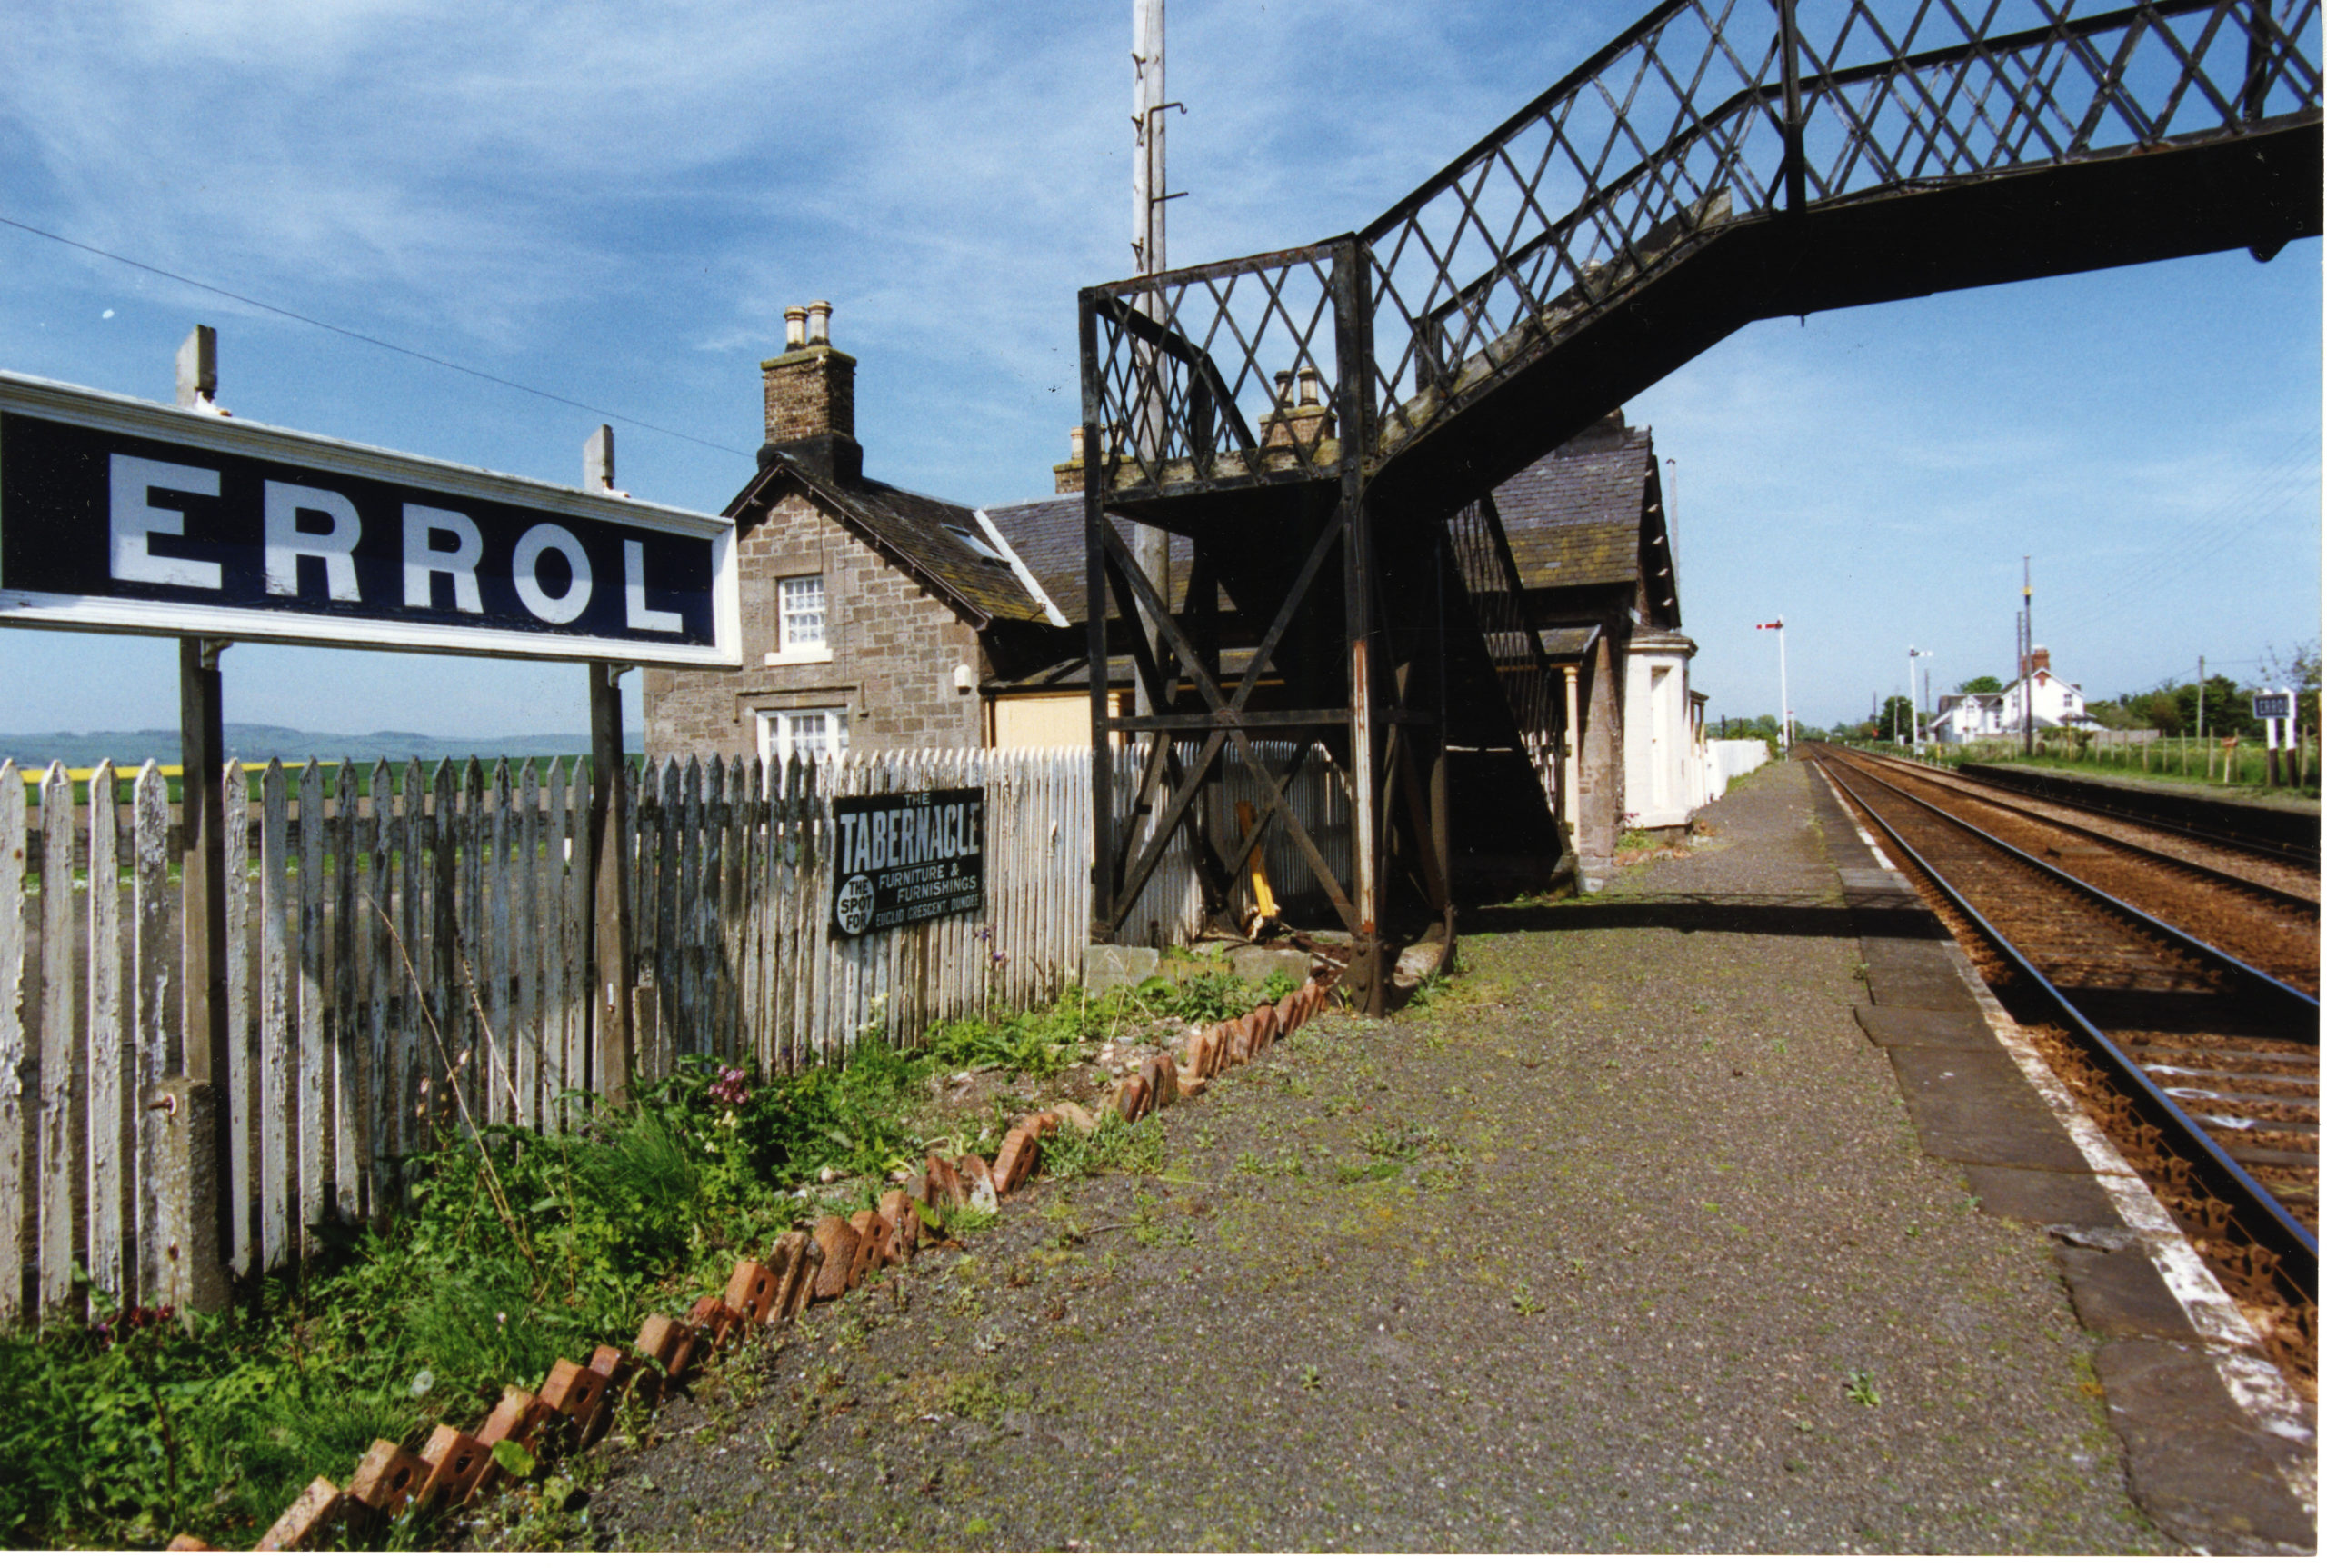 Errol Station view.